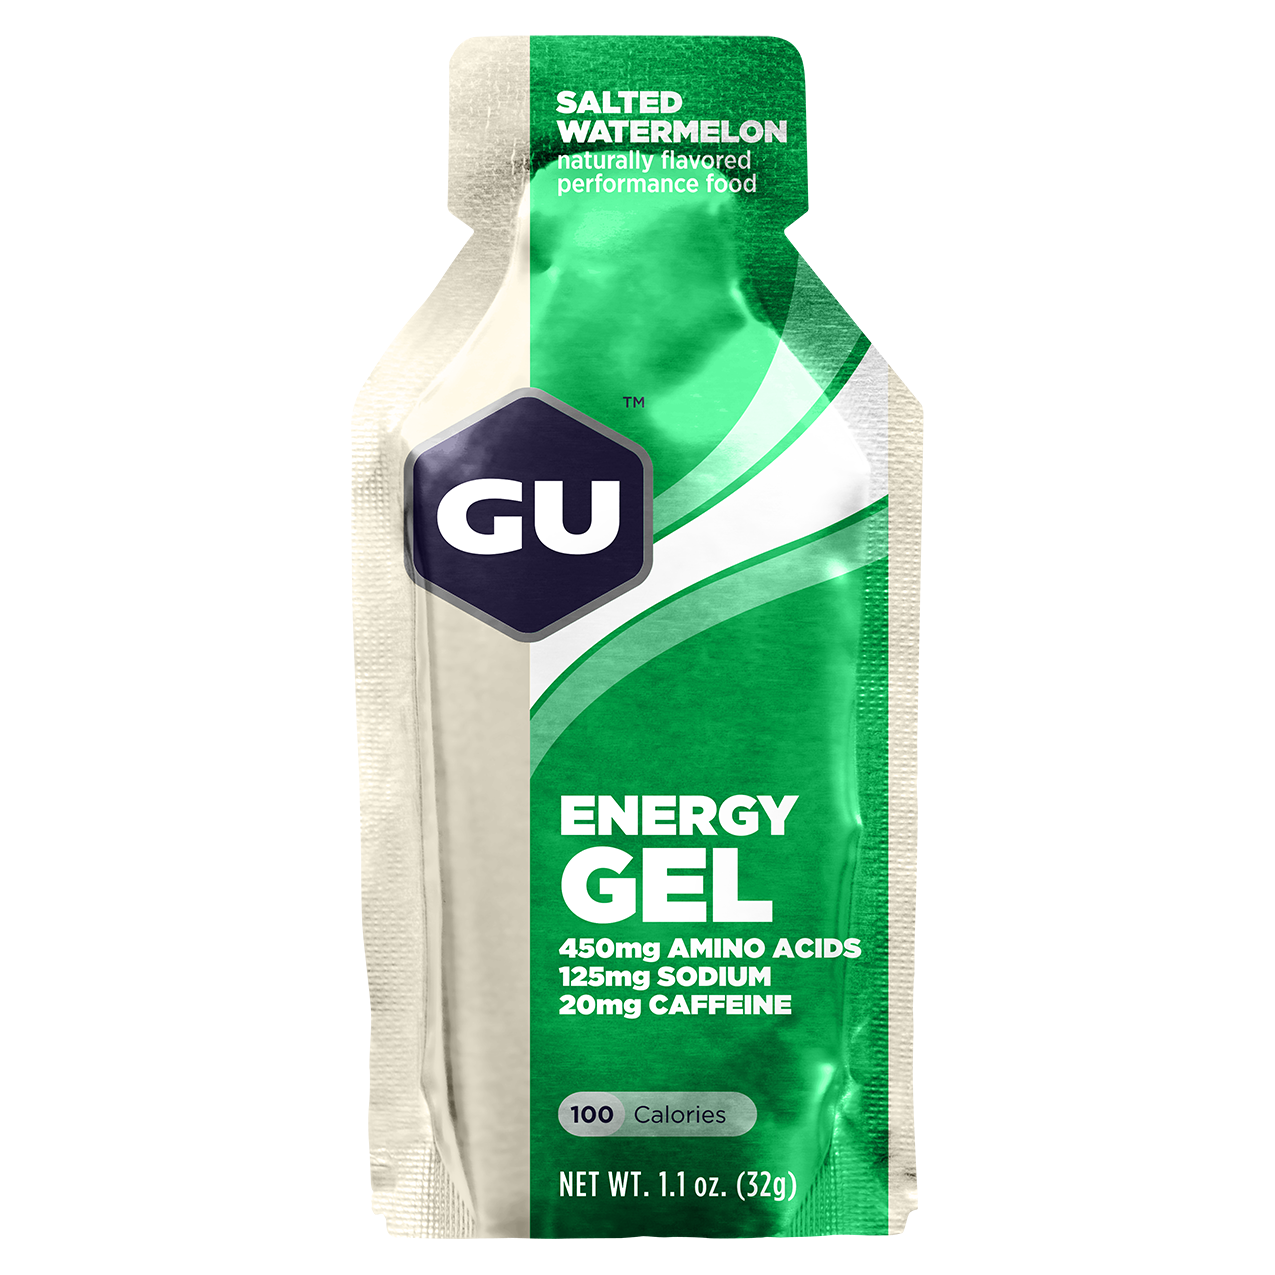 GU Energy Gel Salted Watermelon - 24ct